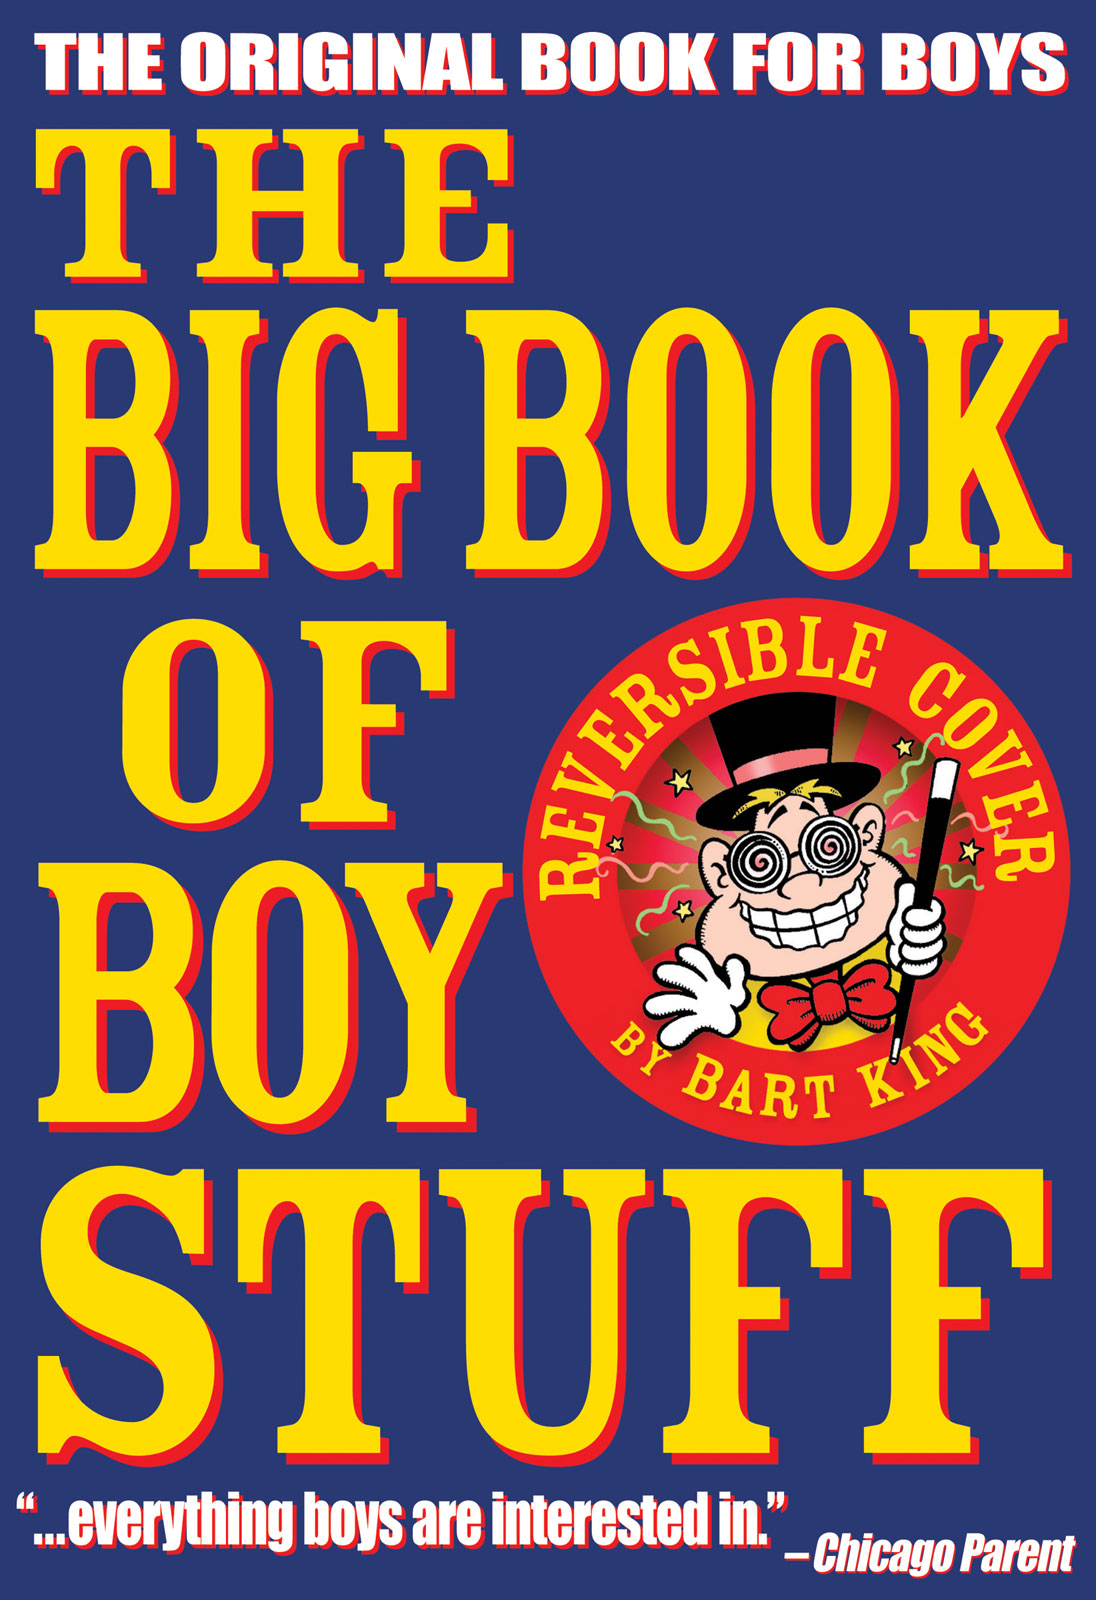 The Big Book of Boy Stuff By: Bart King